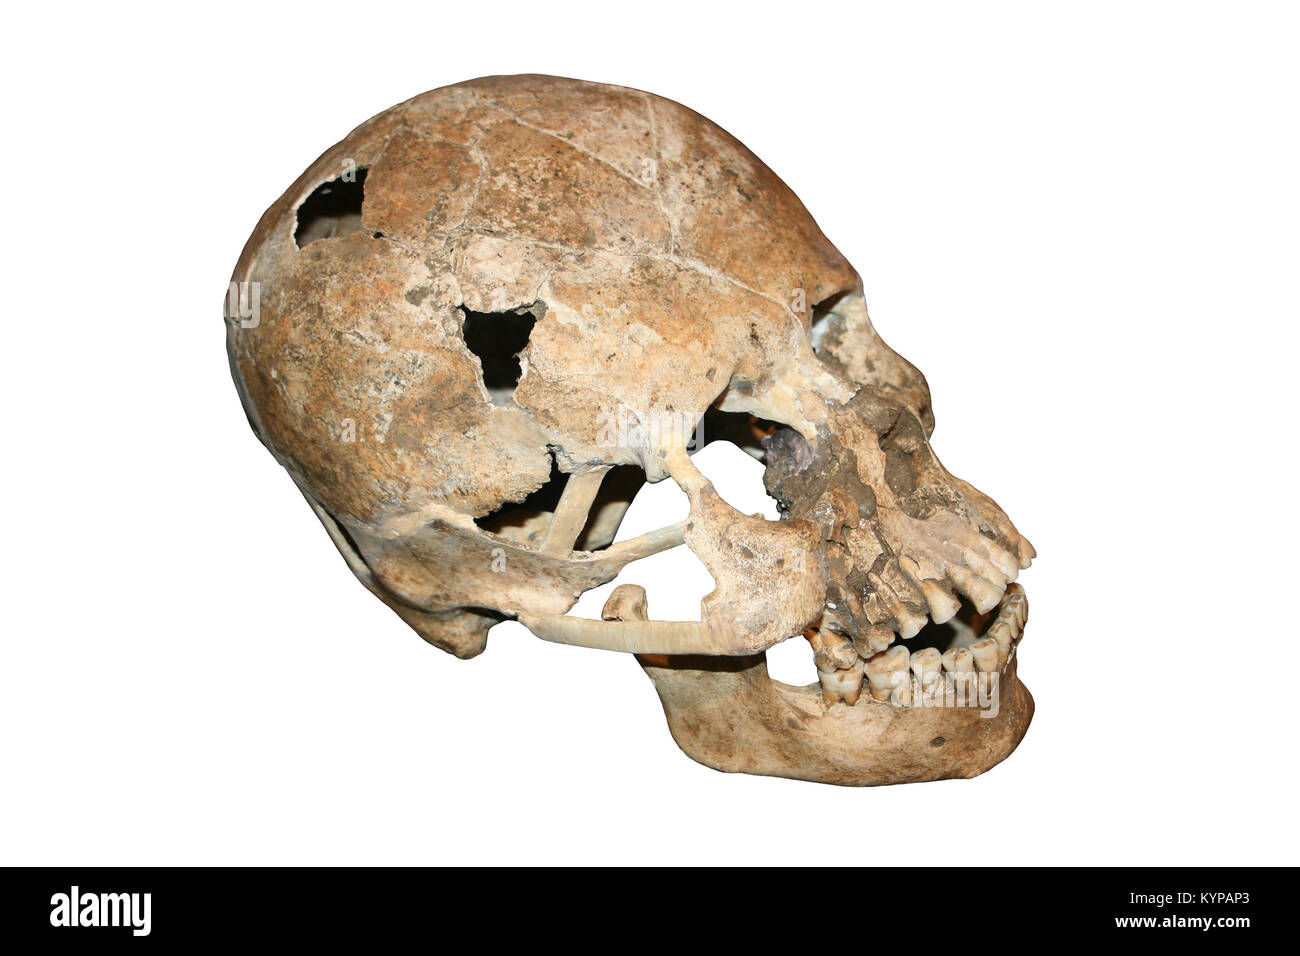 Elongated Skull From Costa Rica - Stock Image